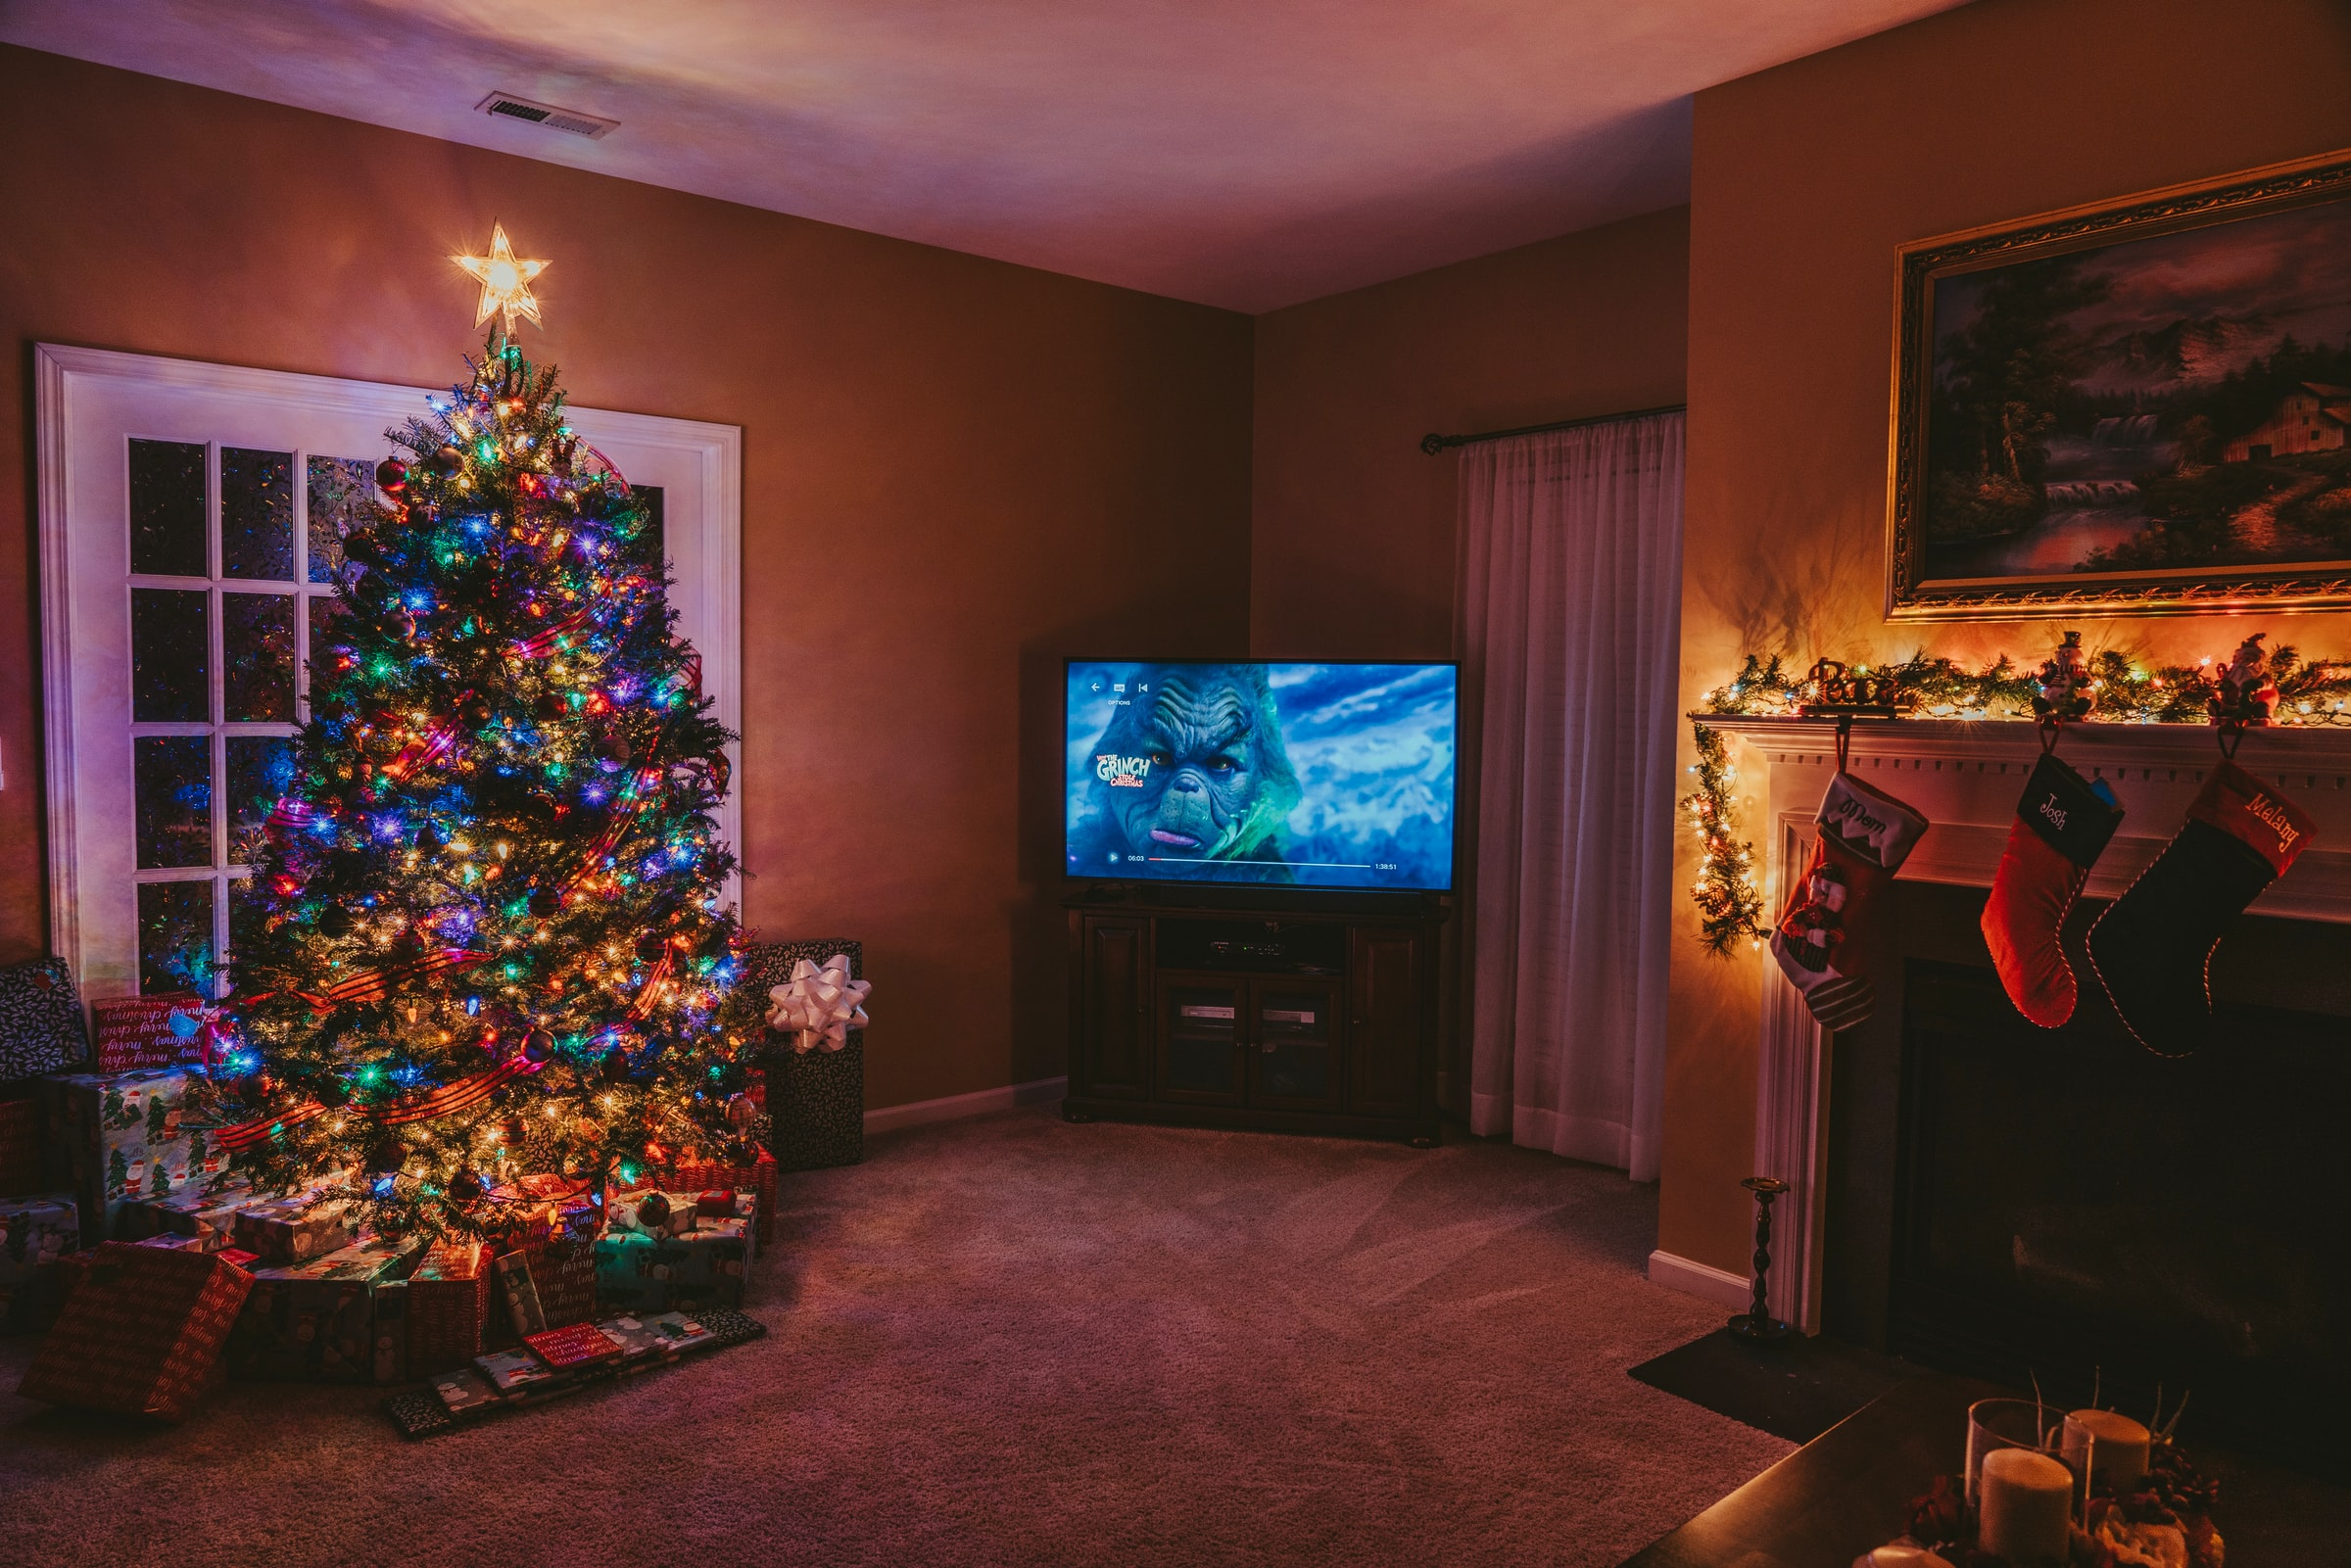 A decorated Christmas tree in a living room. Gifts are placed at the foot of the tree.